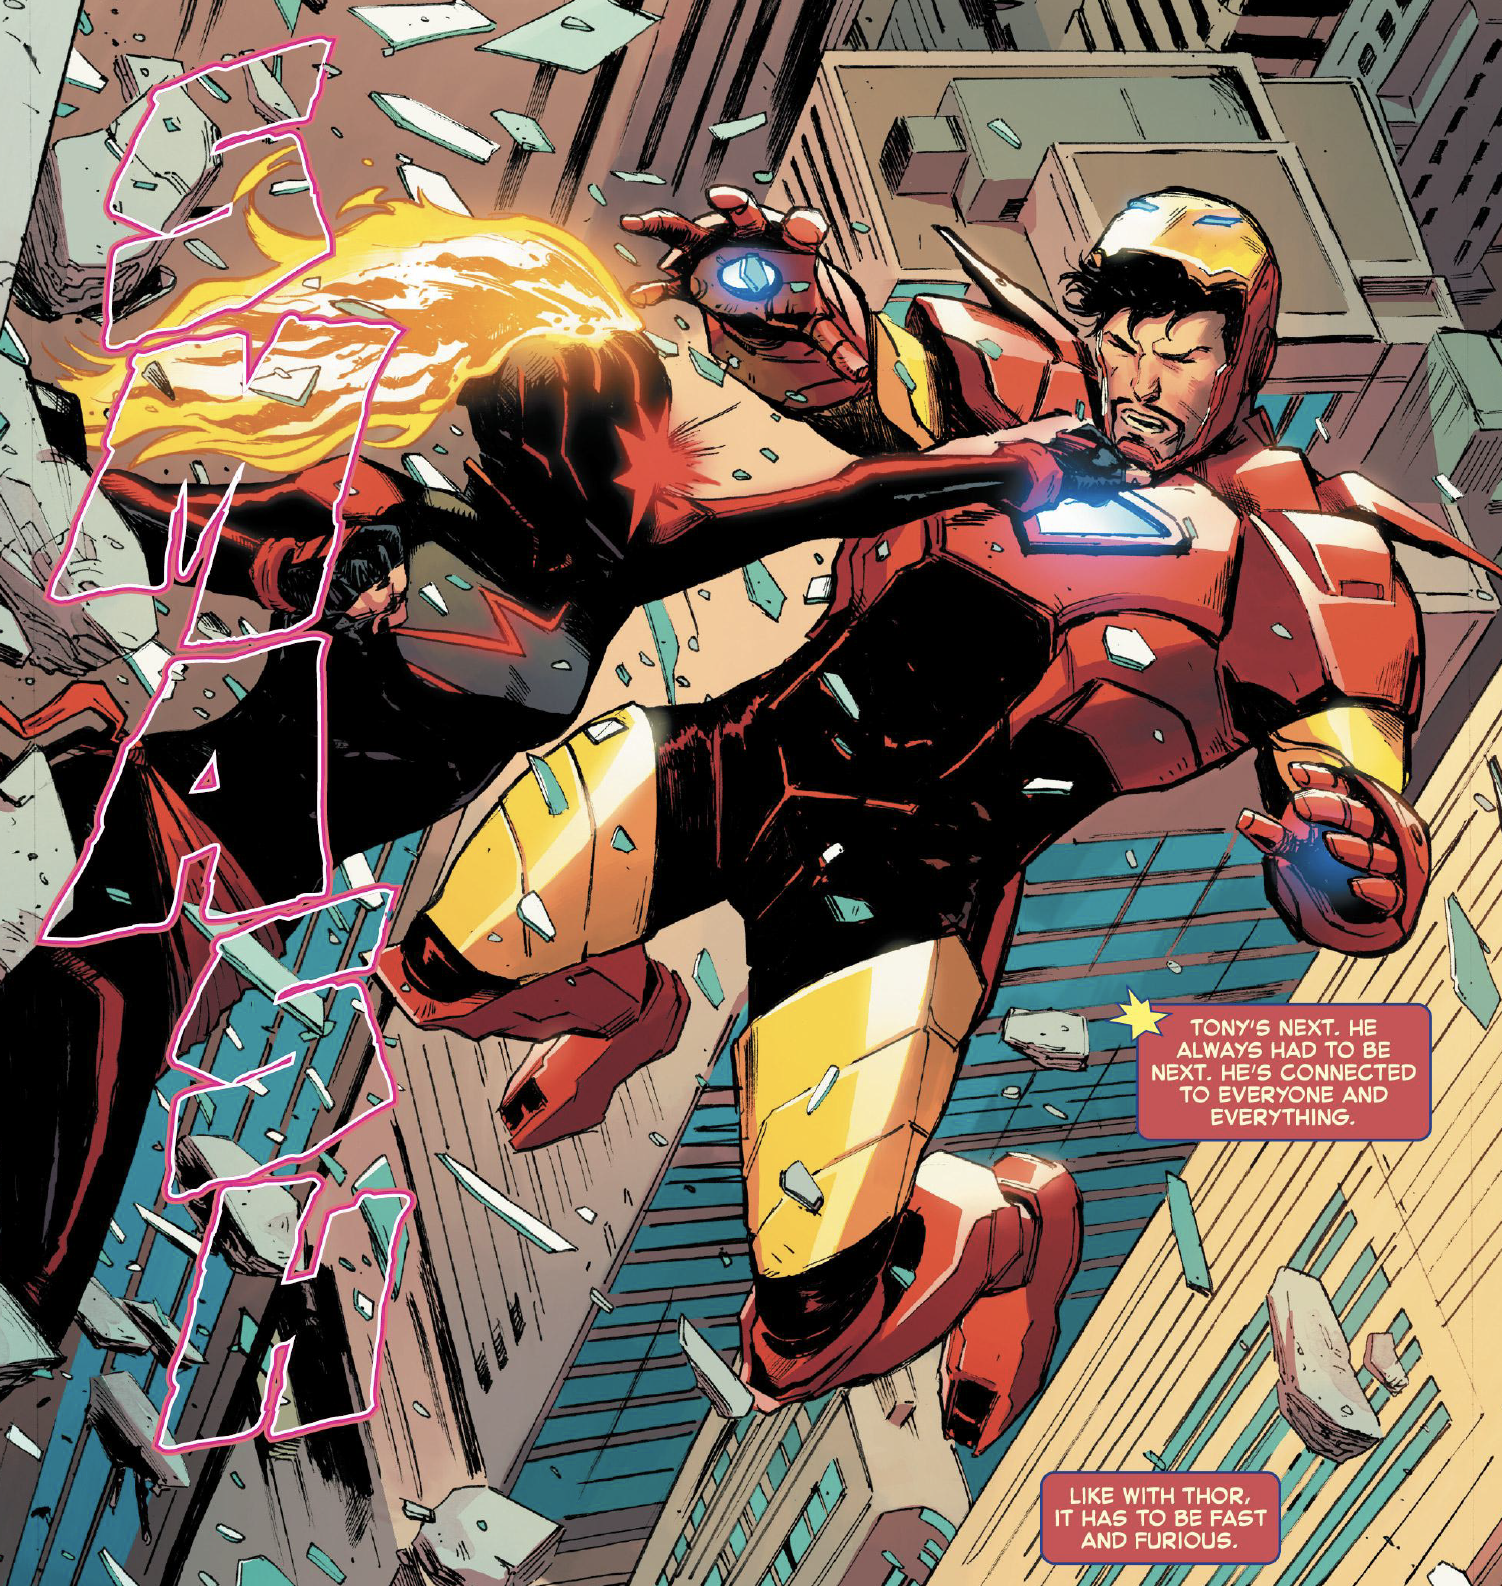 Carol Danvers (Captain Marvel) punches Tony Stark and they fall out of a building in Captain Marvel #13